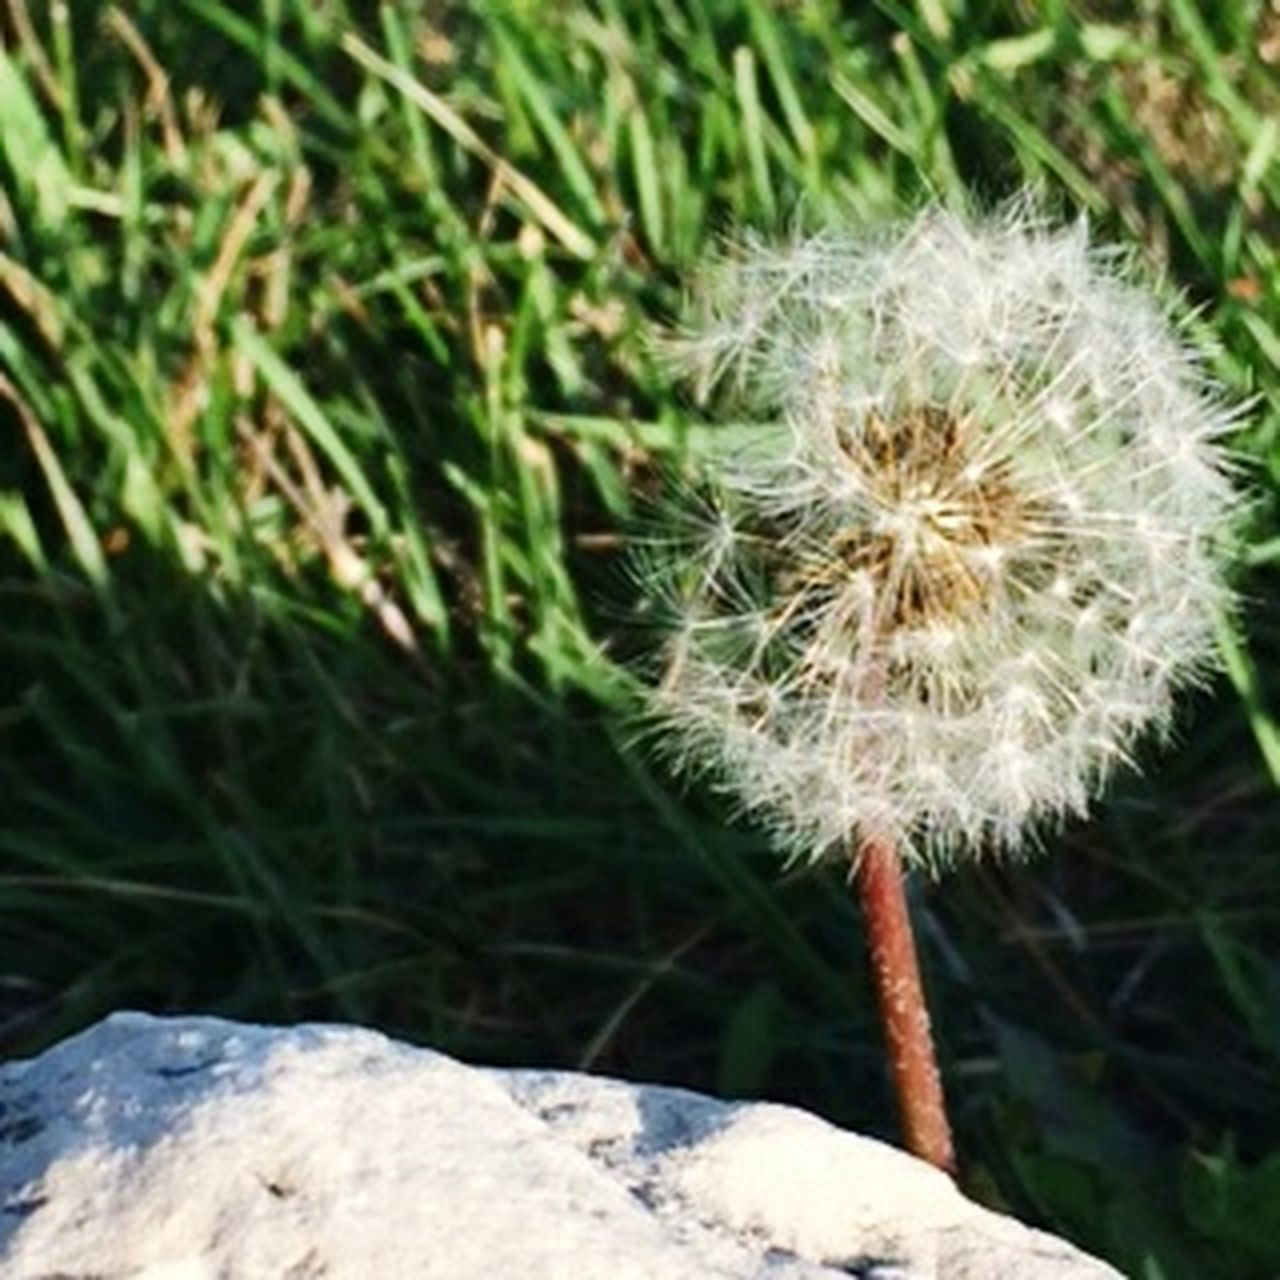 growth, nature, dandelion, flower, plant, fragility, uncultivated, beauty in nature, freshness, outdoors, close-up, no people, day, grass, flower head